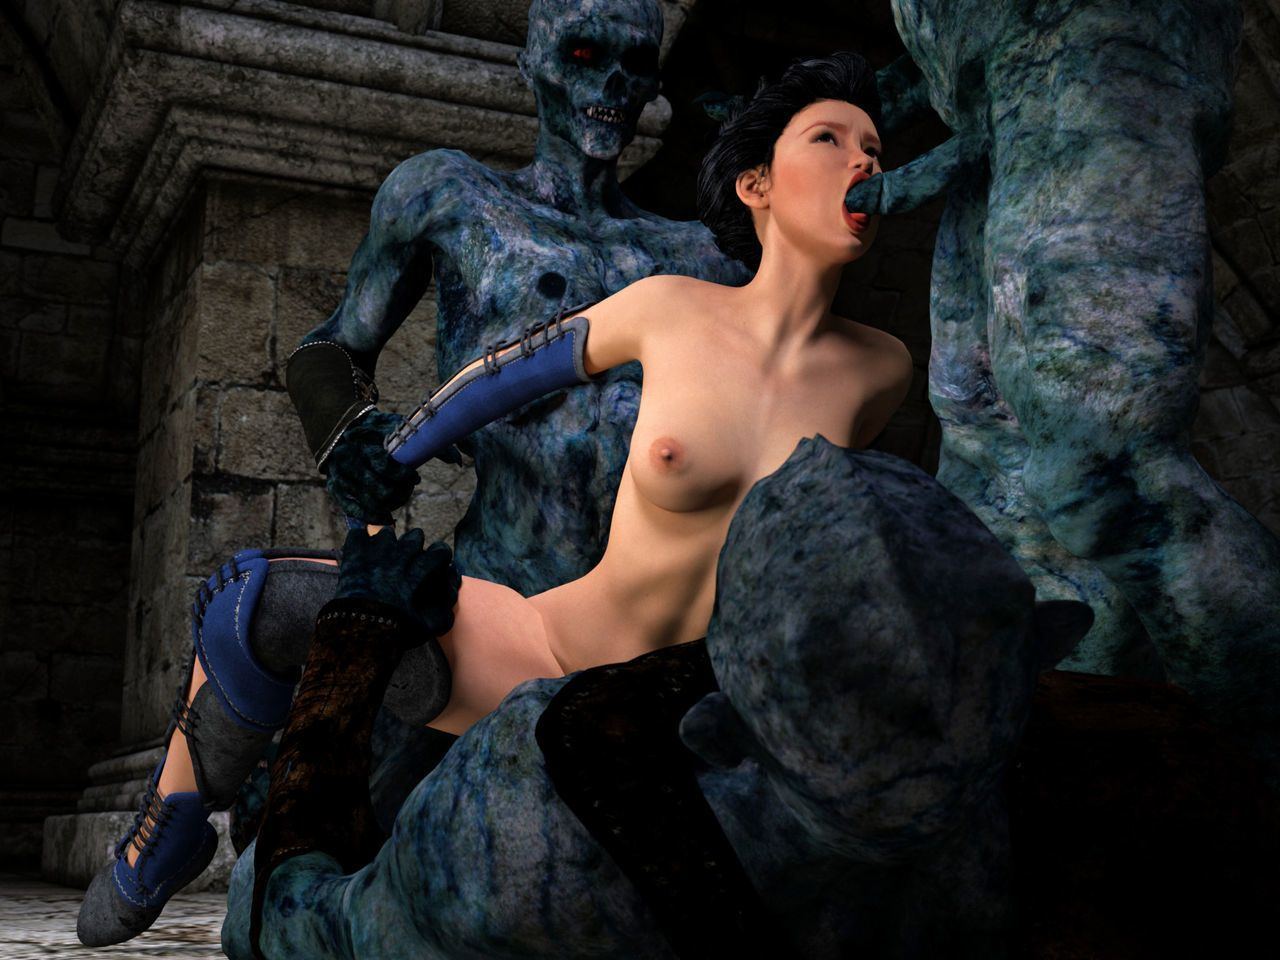 Download golem 3d sex video nude photos